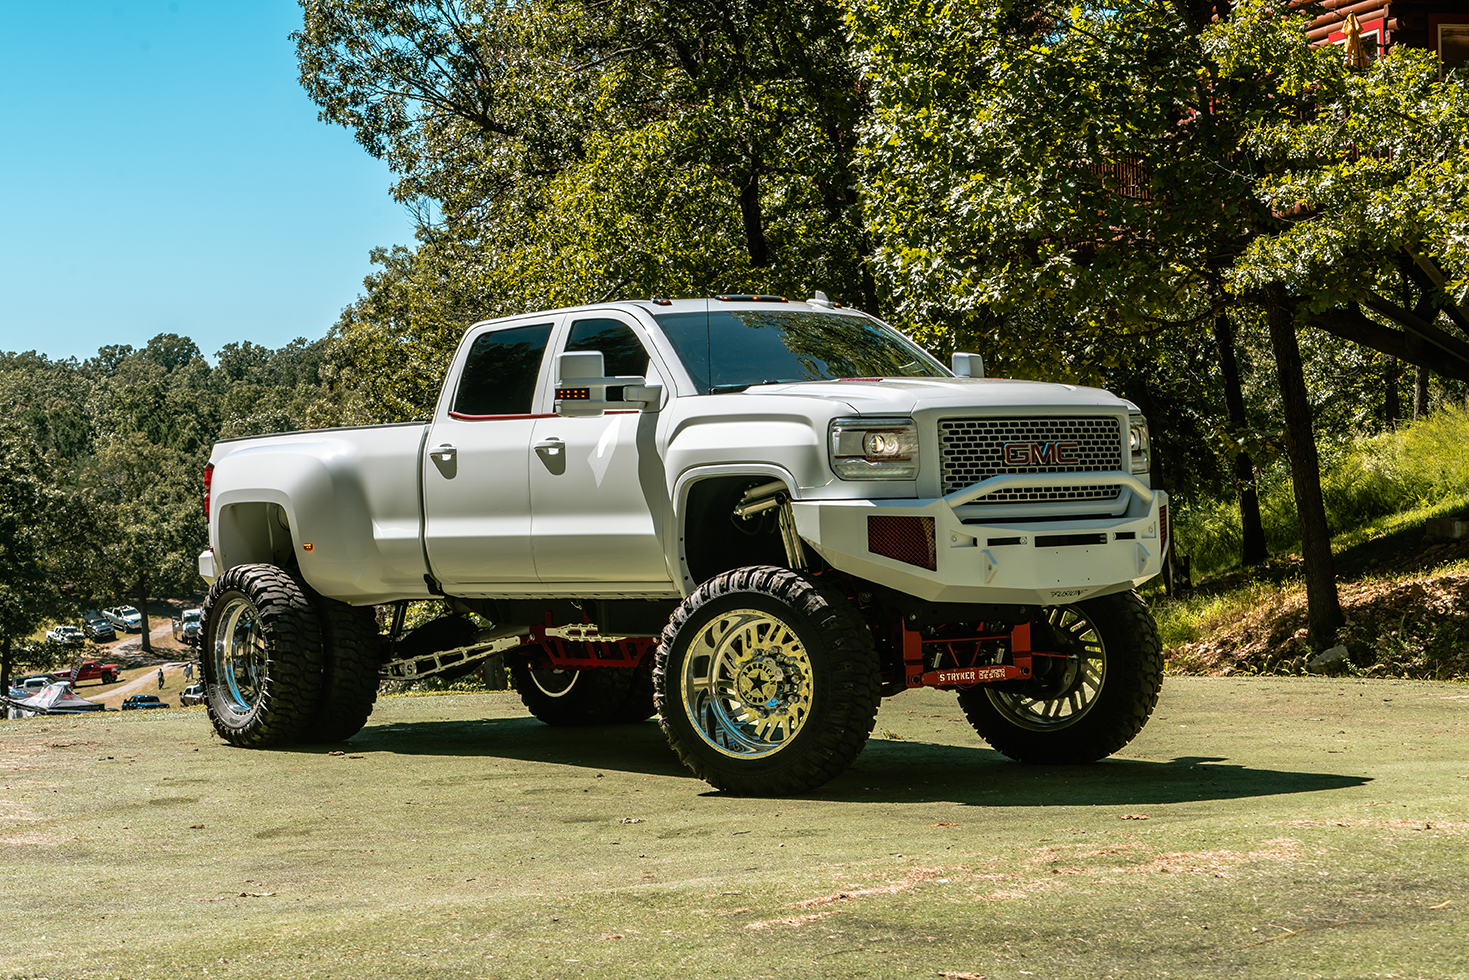 1998 Gmc Sierra 3500 Dually >> American Force Dually With Adapters Series 70 Shift DRW Wheels | California Wheels